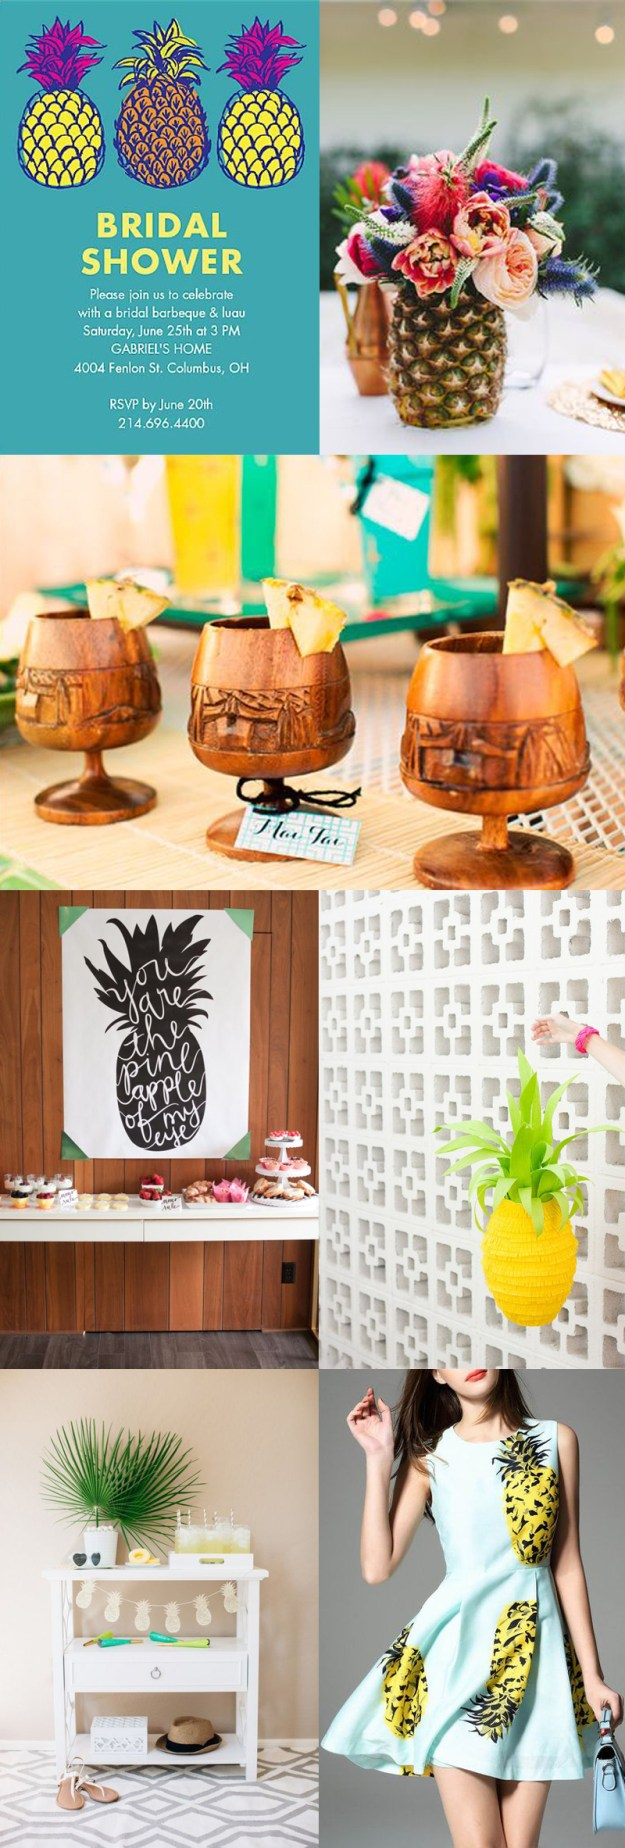 Pineapple bridal shower inspiration board